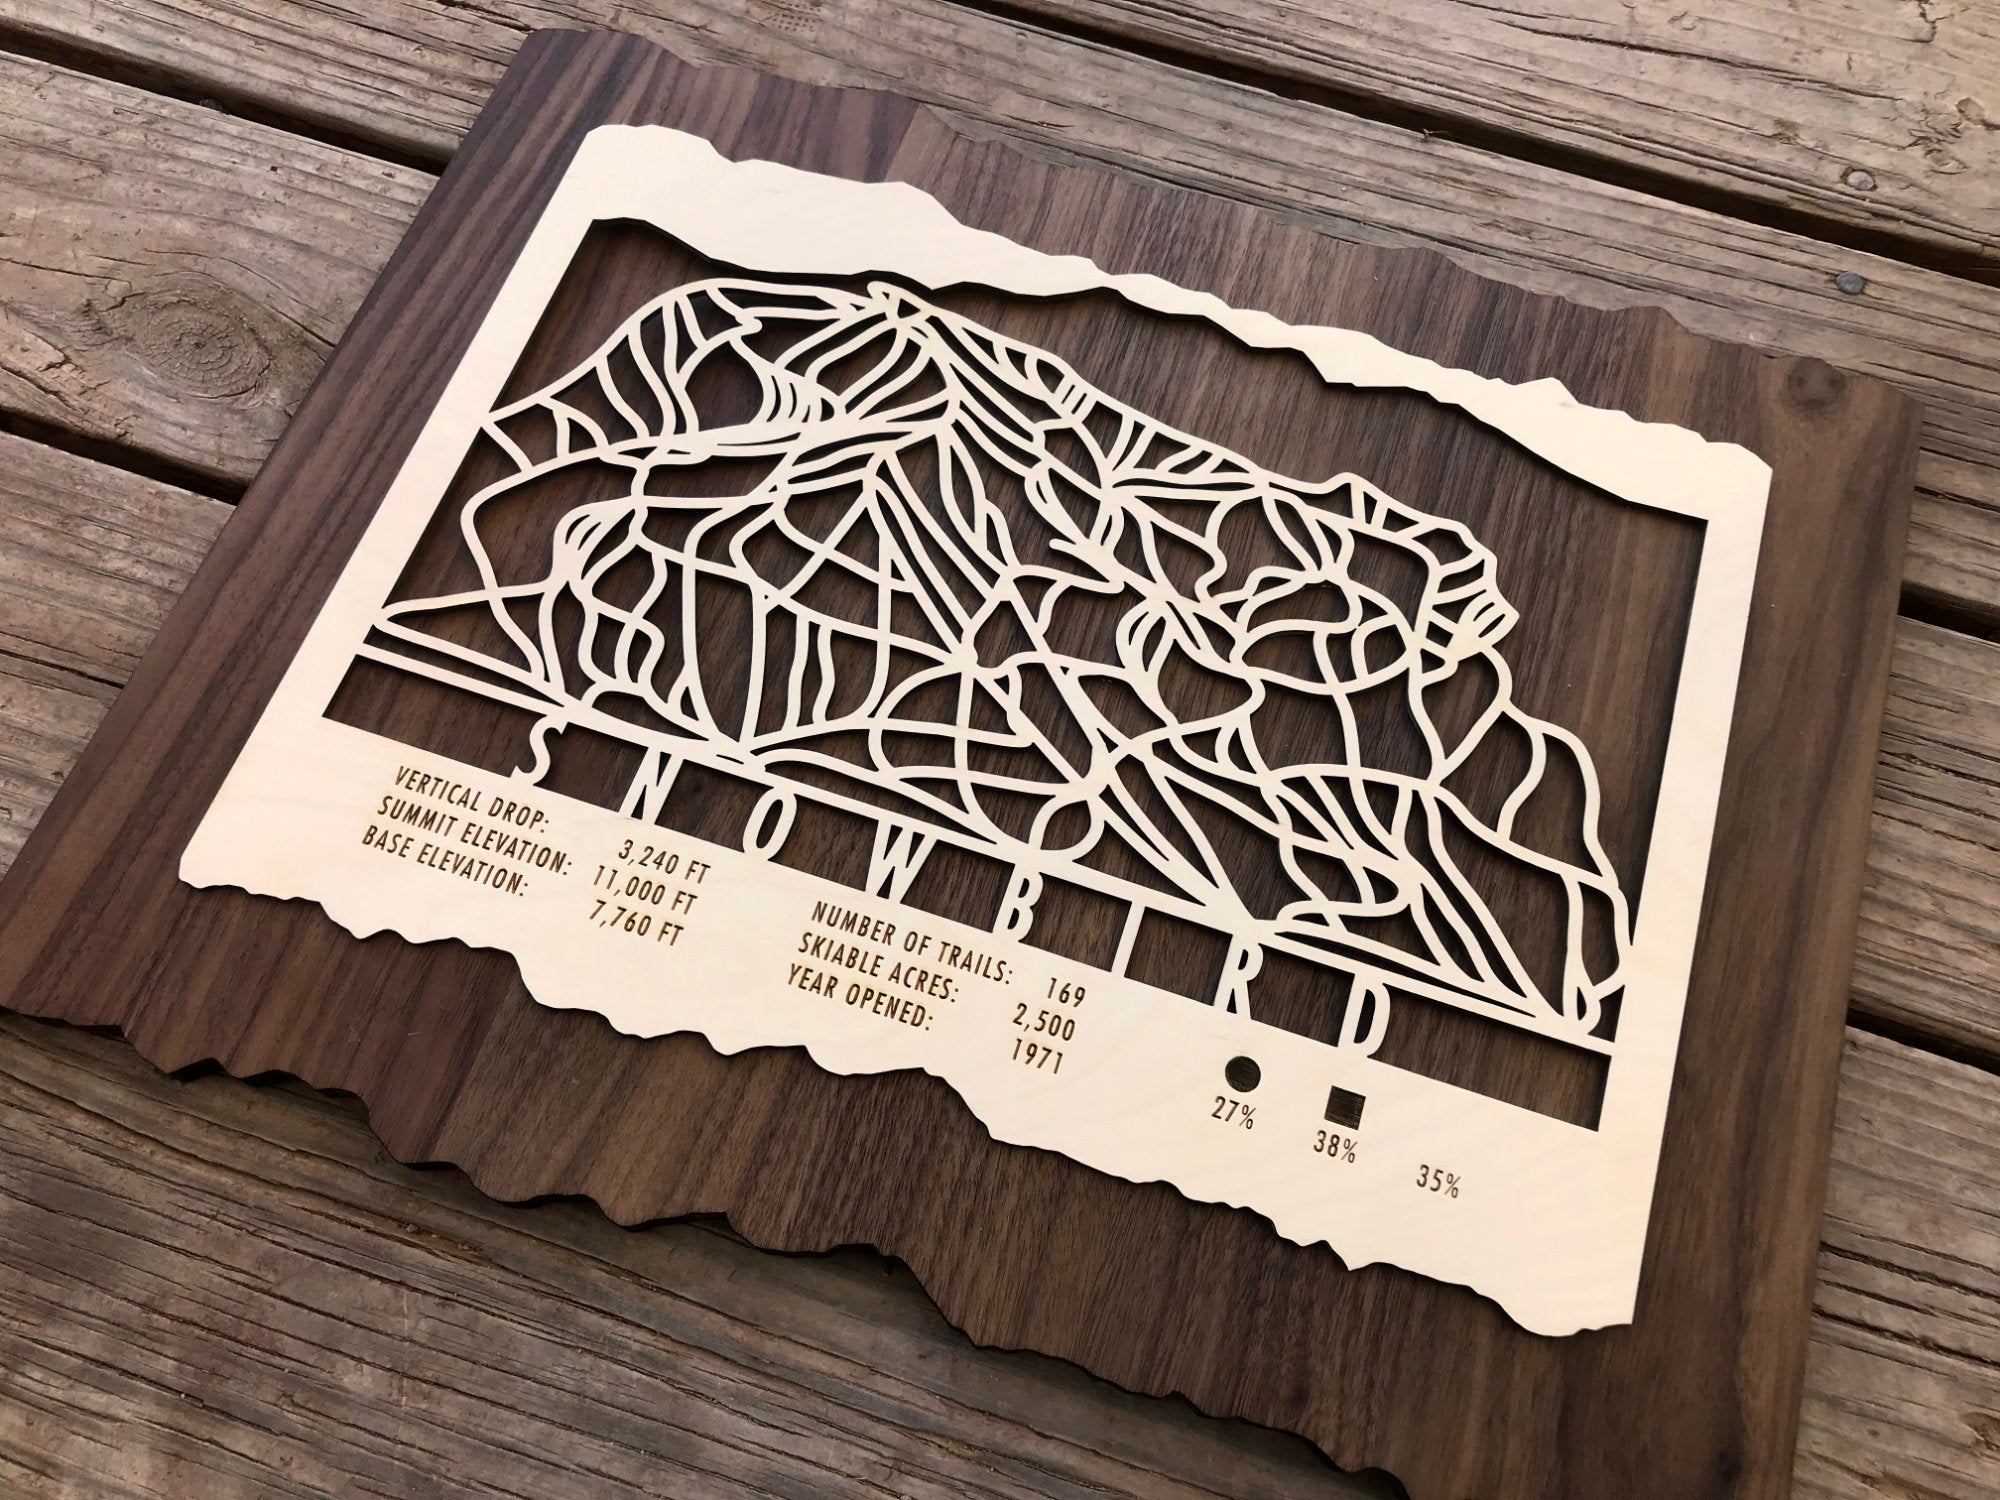 Snowbird Ski Decor Trail Map Art - MountainCut